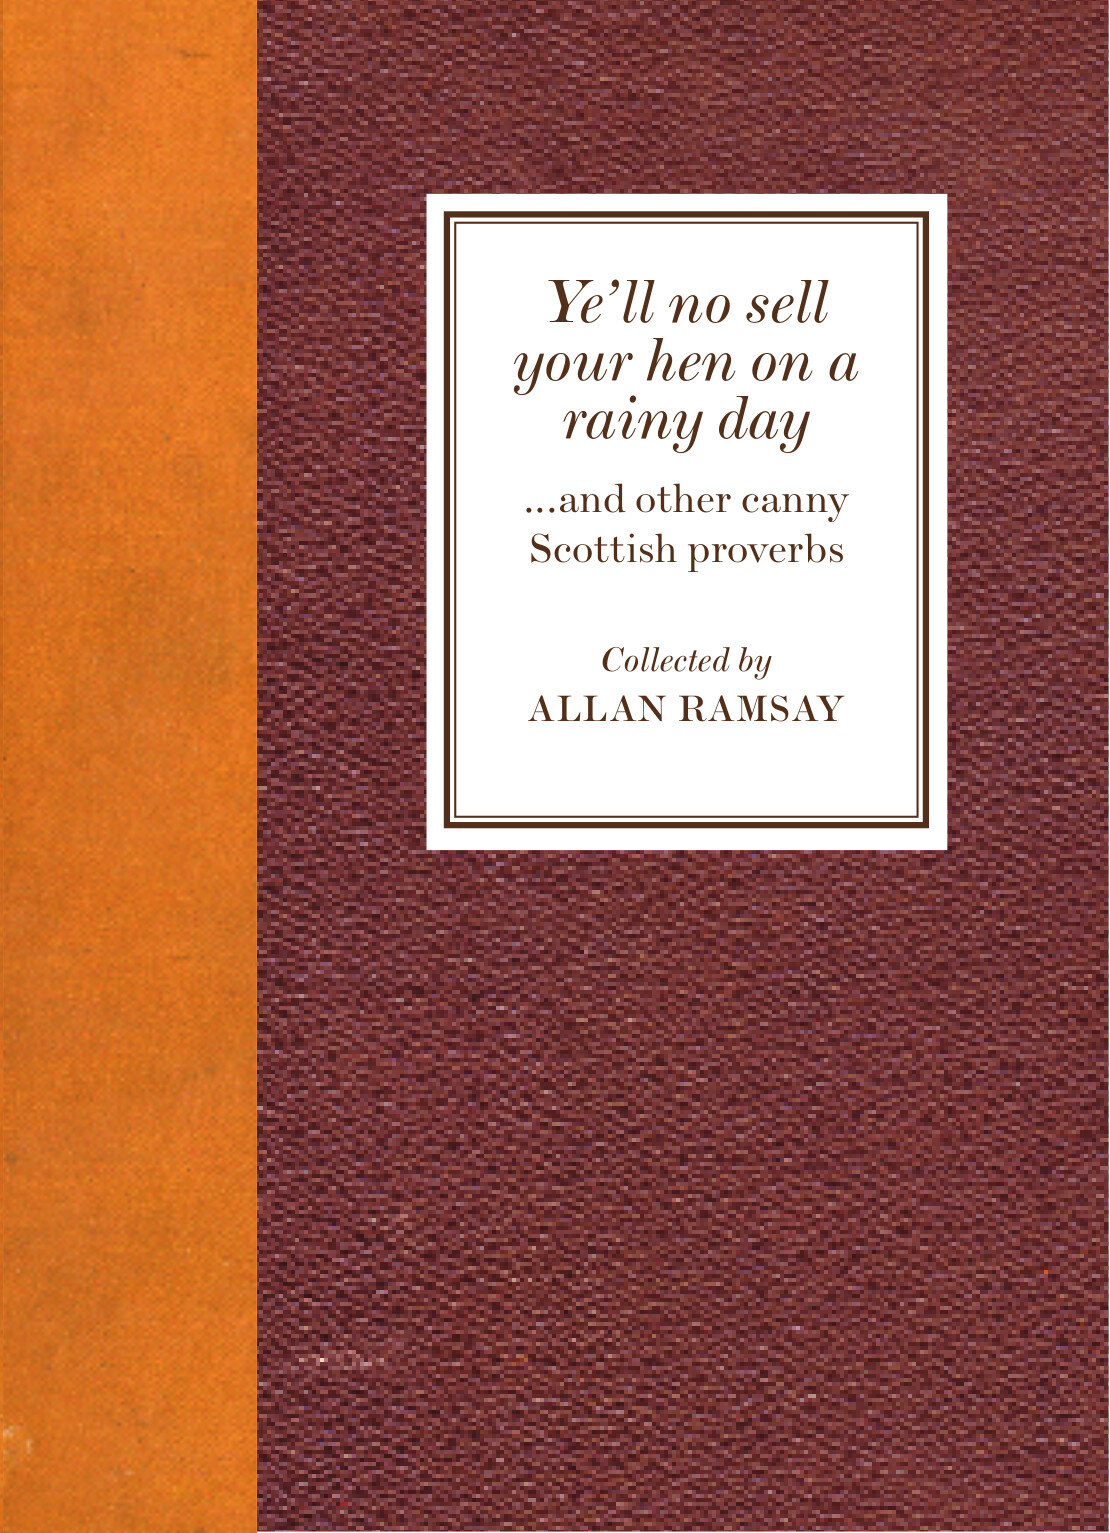 Ye'll no sell your hen on a rainy day Allan Ramsey 9781910745397 Luath Press.jpg